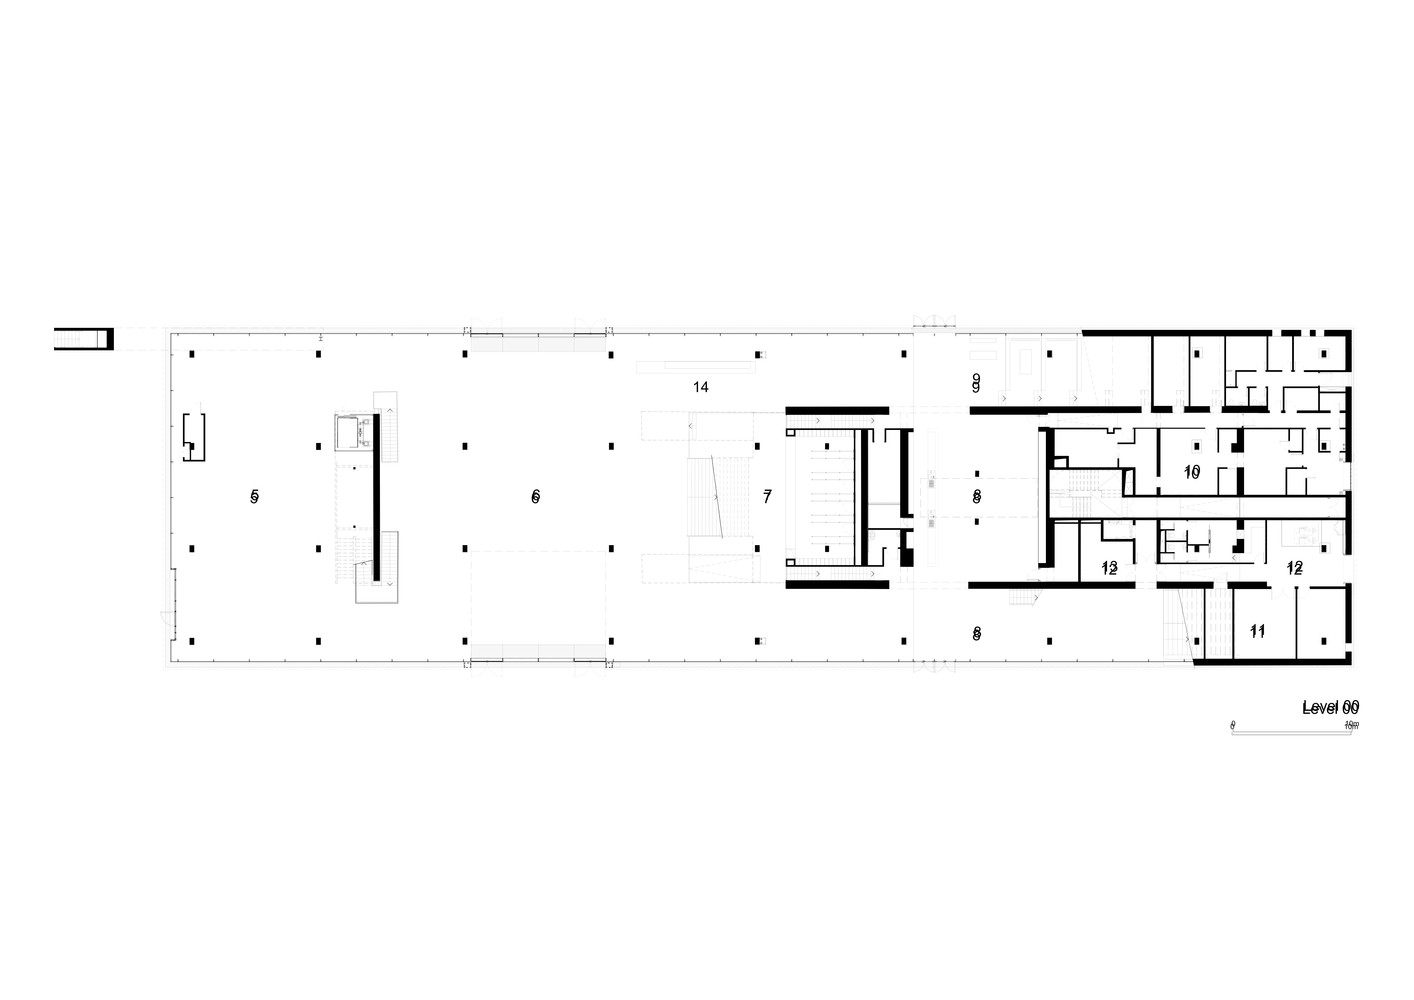 Garage Museum Of Contemporary Art,Ground Level Plan